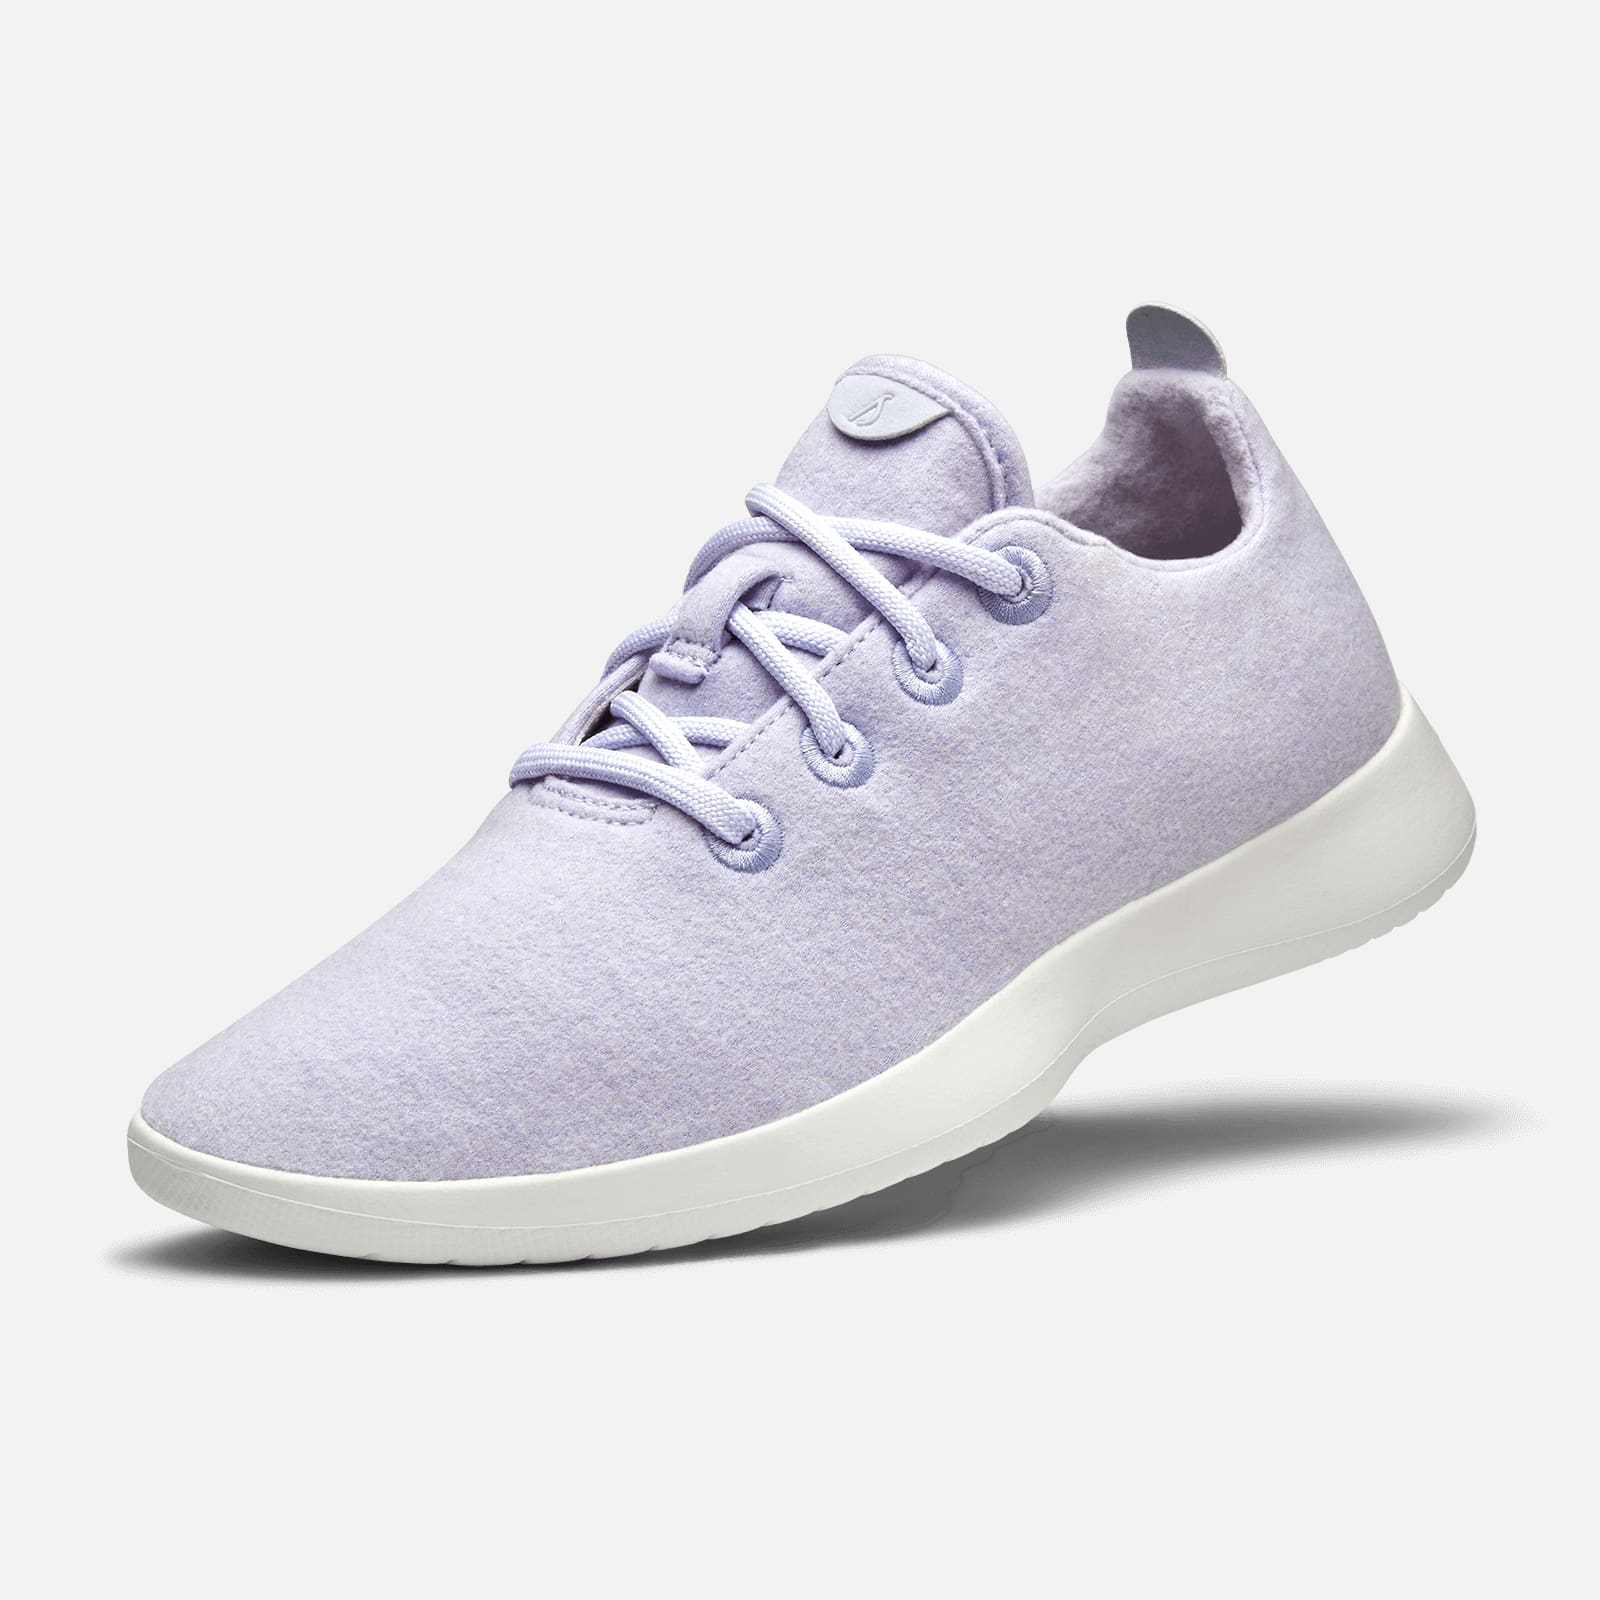 Allbirds_W_Wool_Runner_KOTARE_HEATHER_ANGLE_1600x1600_Eyelids_V2_ad8d44ce-1c48-4643-9845-0274a25a26e0.png?v=1534272080.jpeg